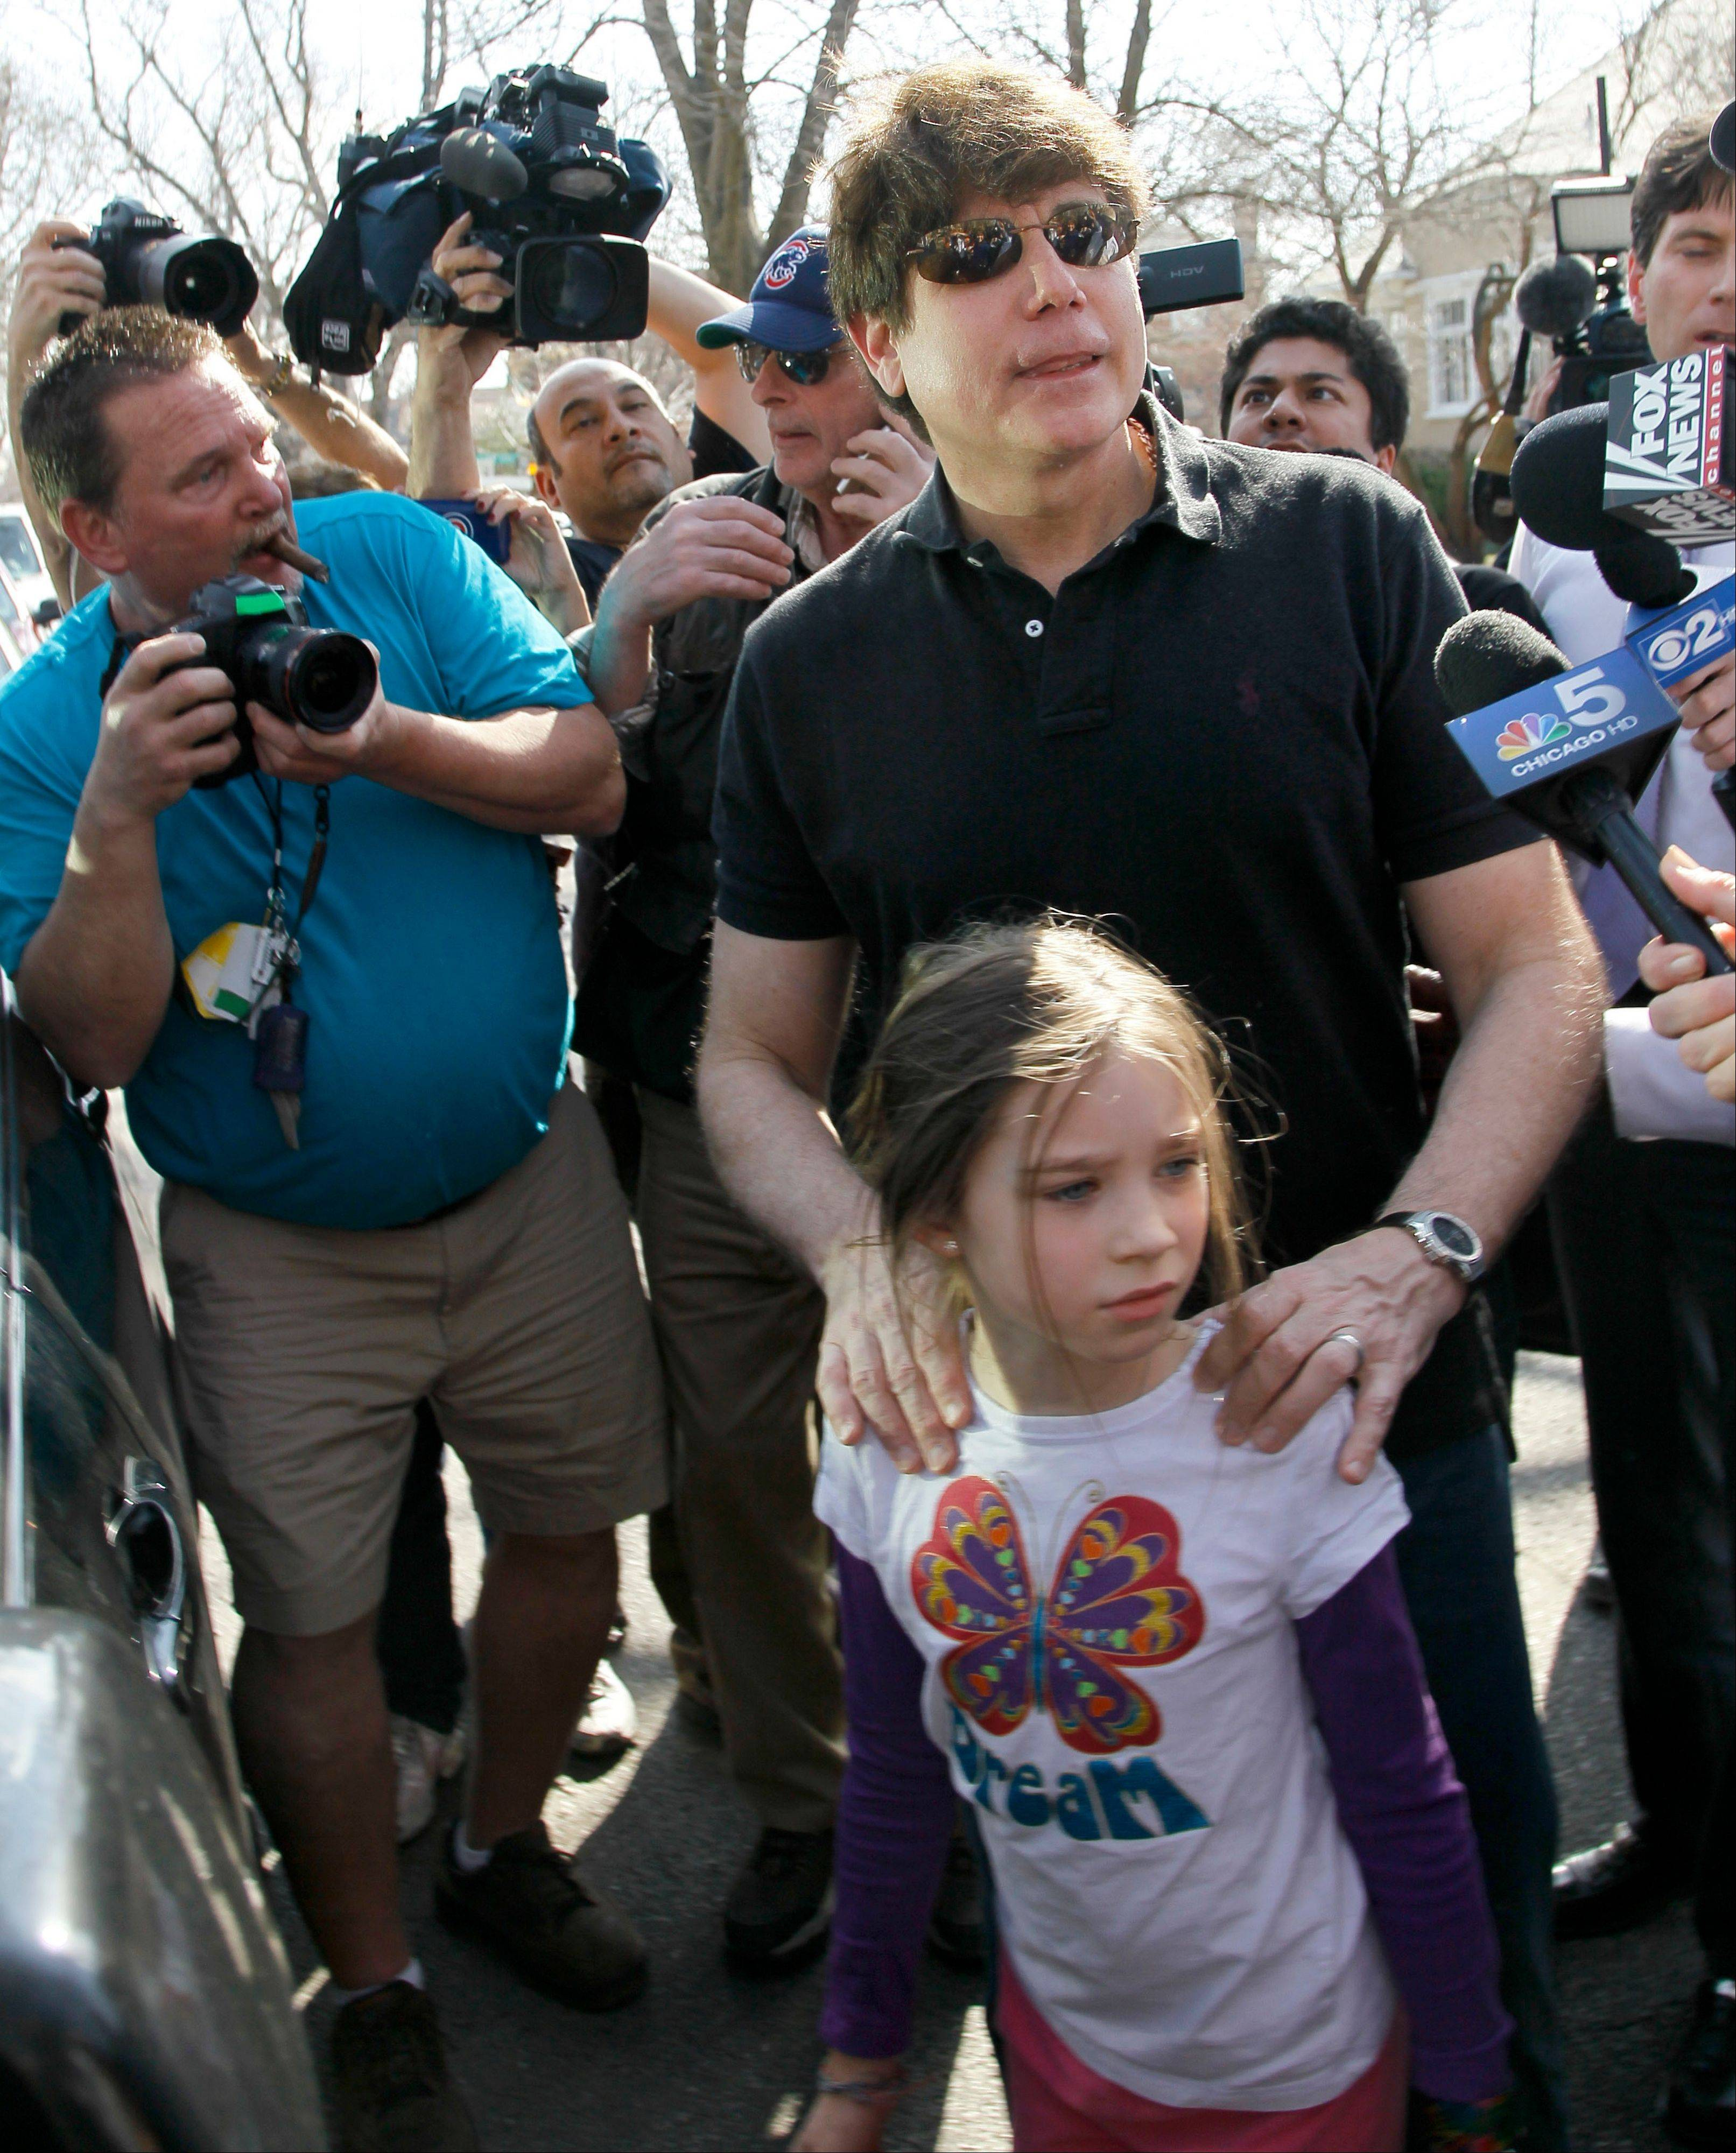 On last day free, Blagojevich gets last word